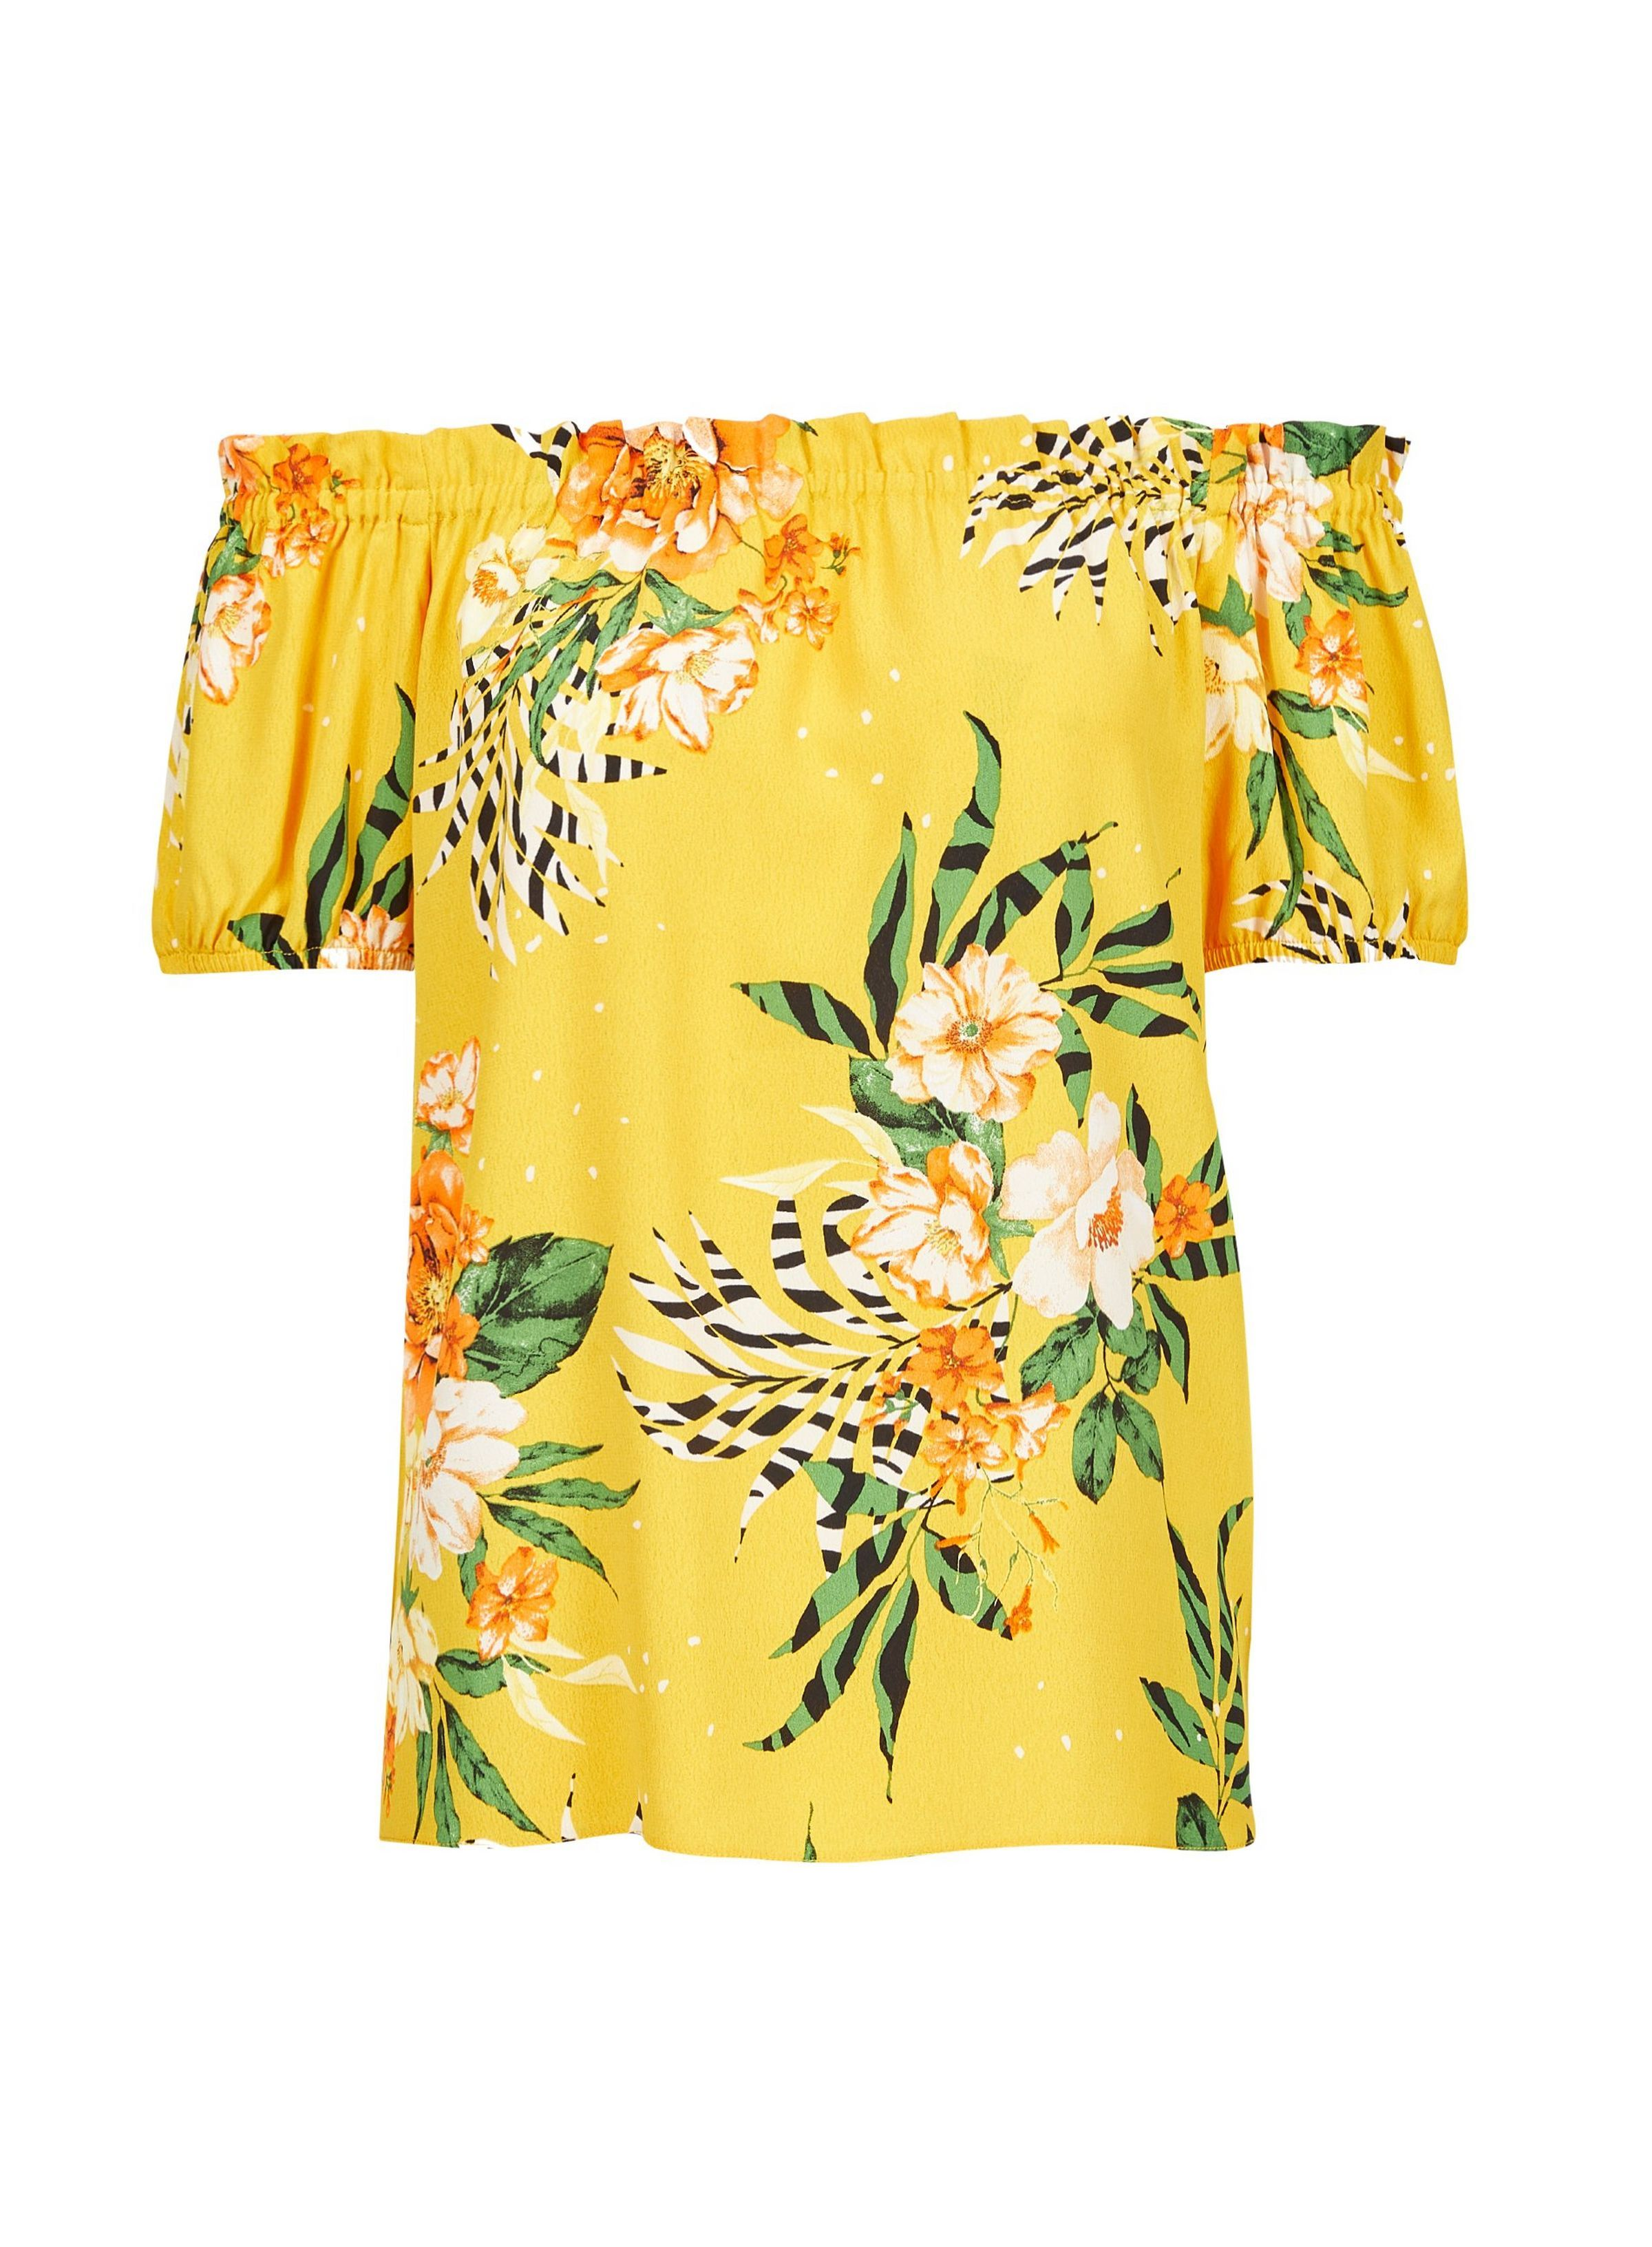 416c13794f5 Yellow Floral Print Bardot Top in 2019 | JRC IN-STORE 2019 | Bardot ...